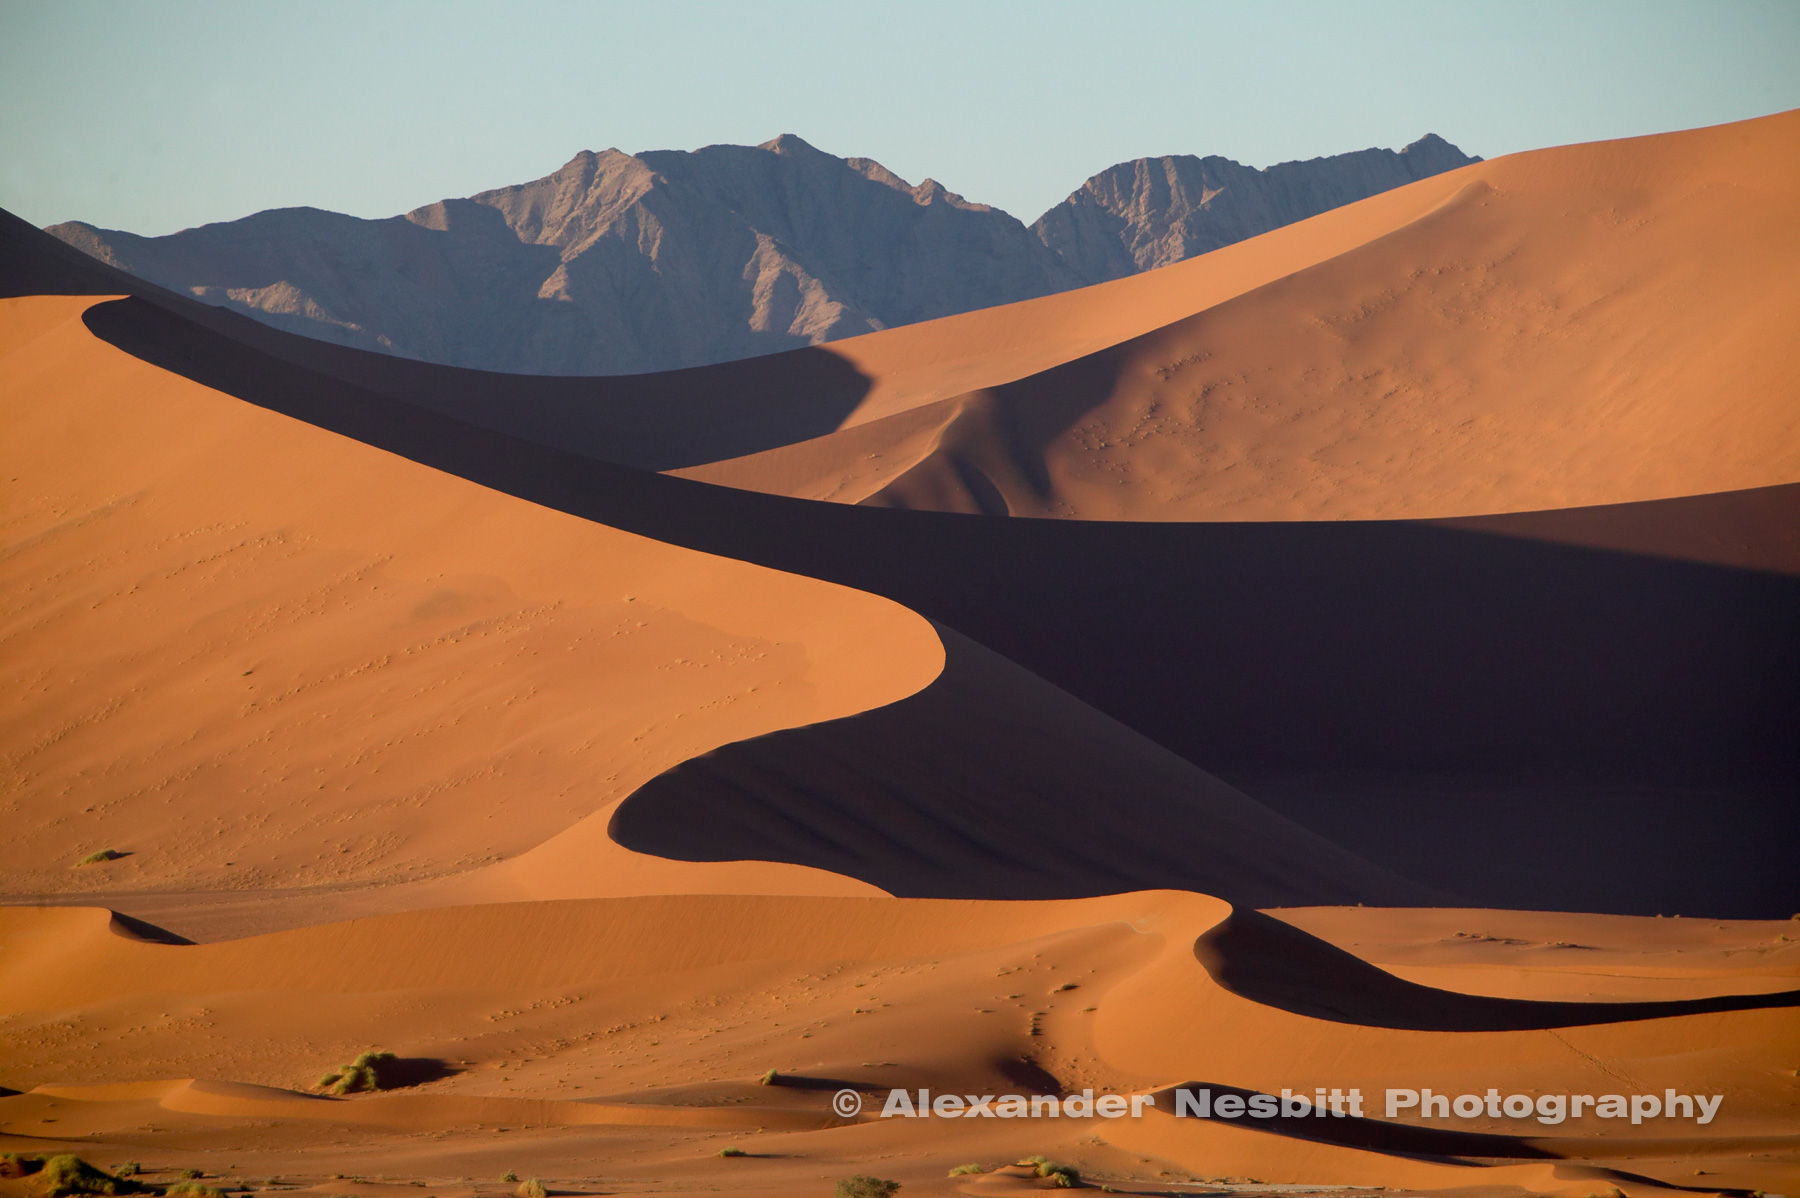 Namibia, Namib desert - Massive dune ridge deep in the Namib desert near the access point of Sossusvlei.